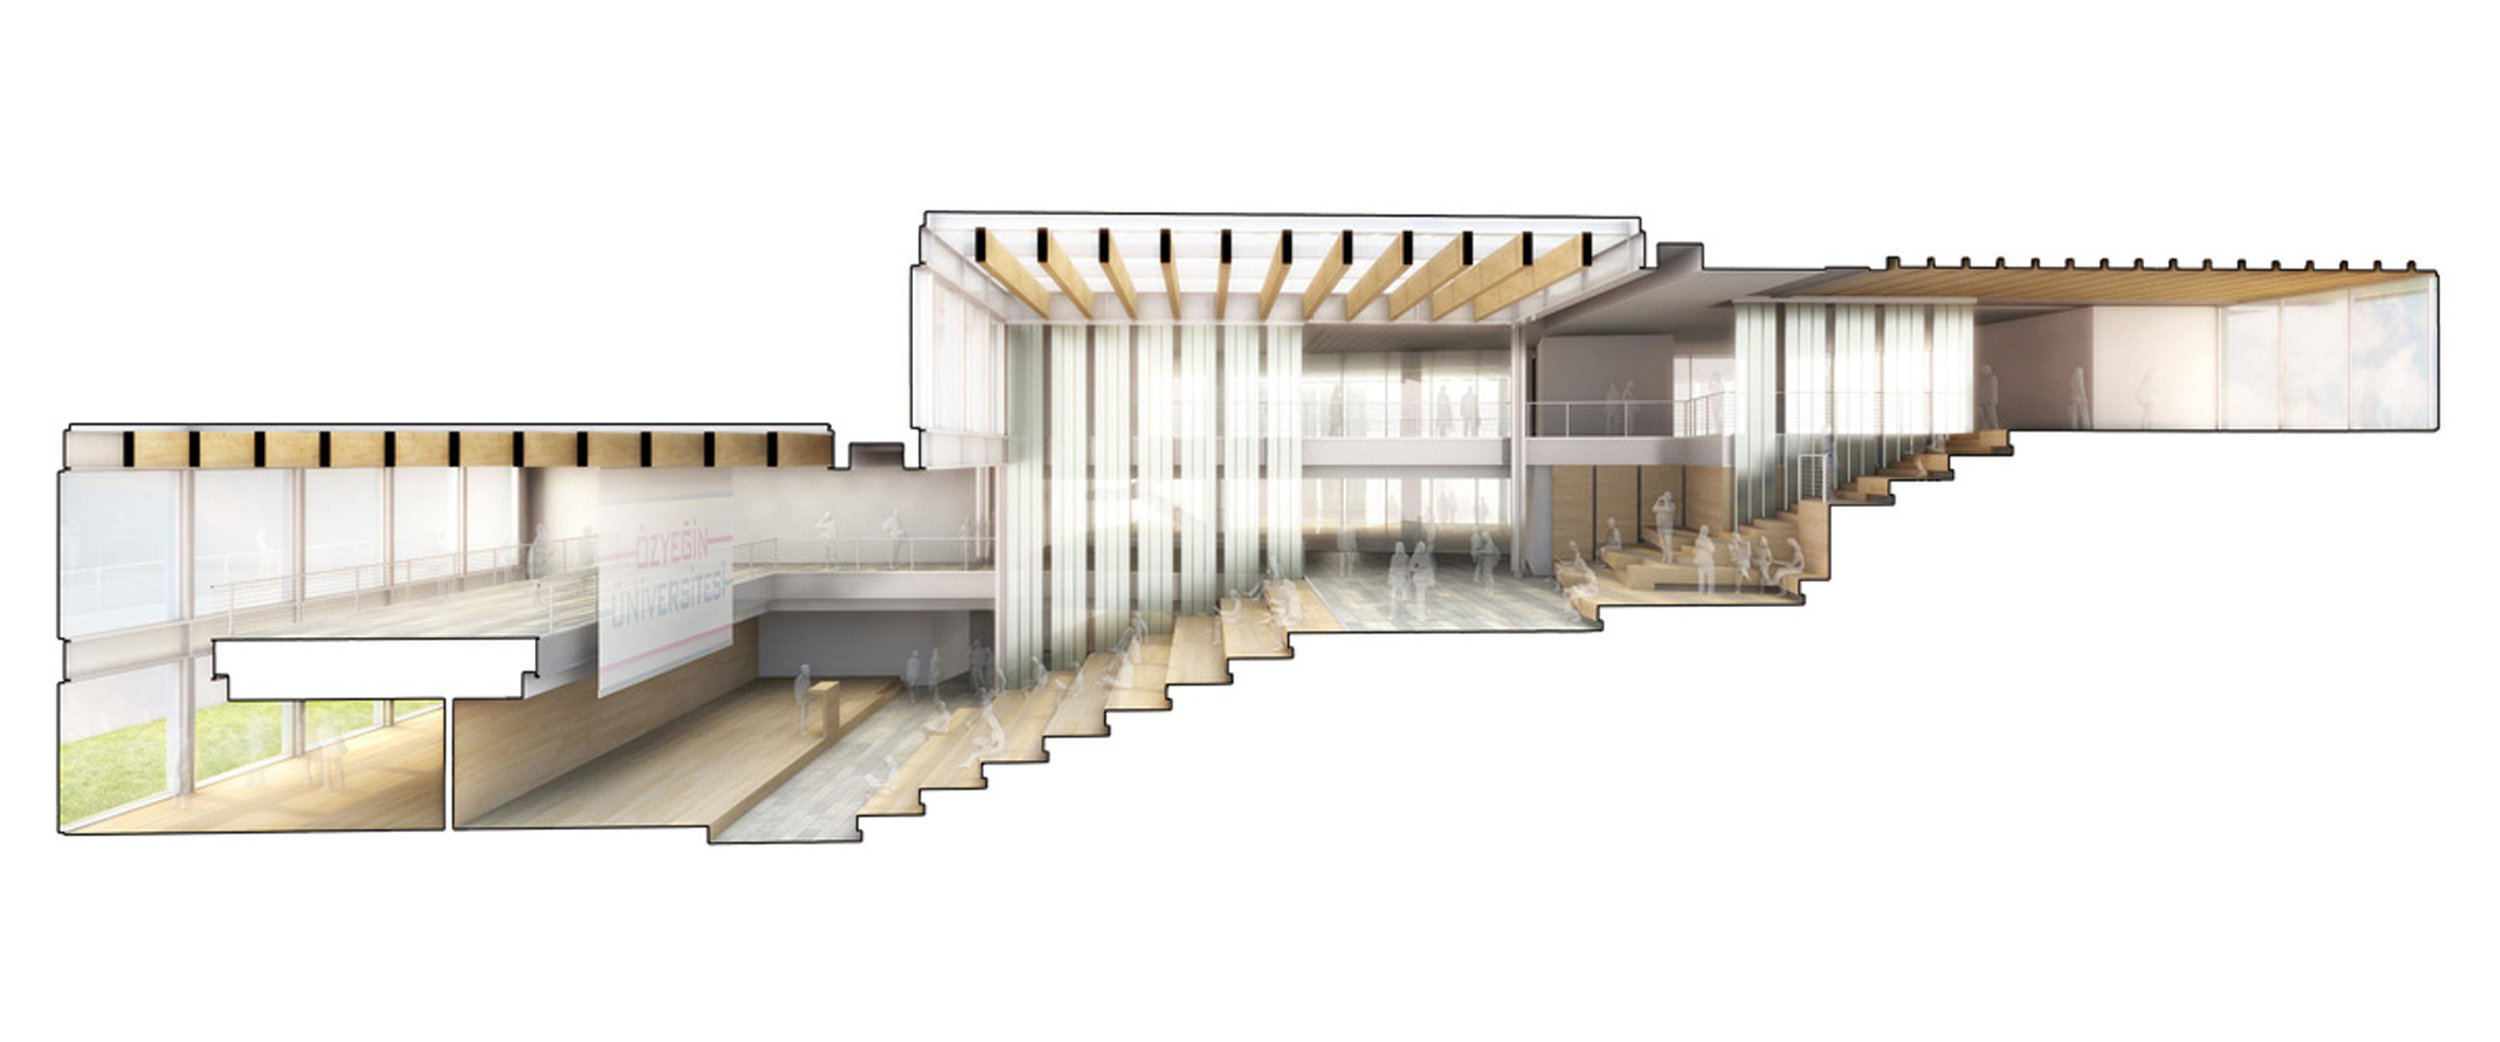 OZU student center_forumn render.jpg